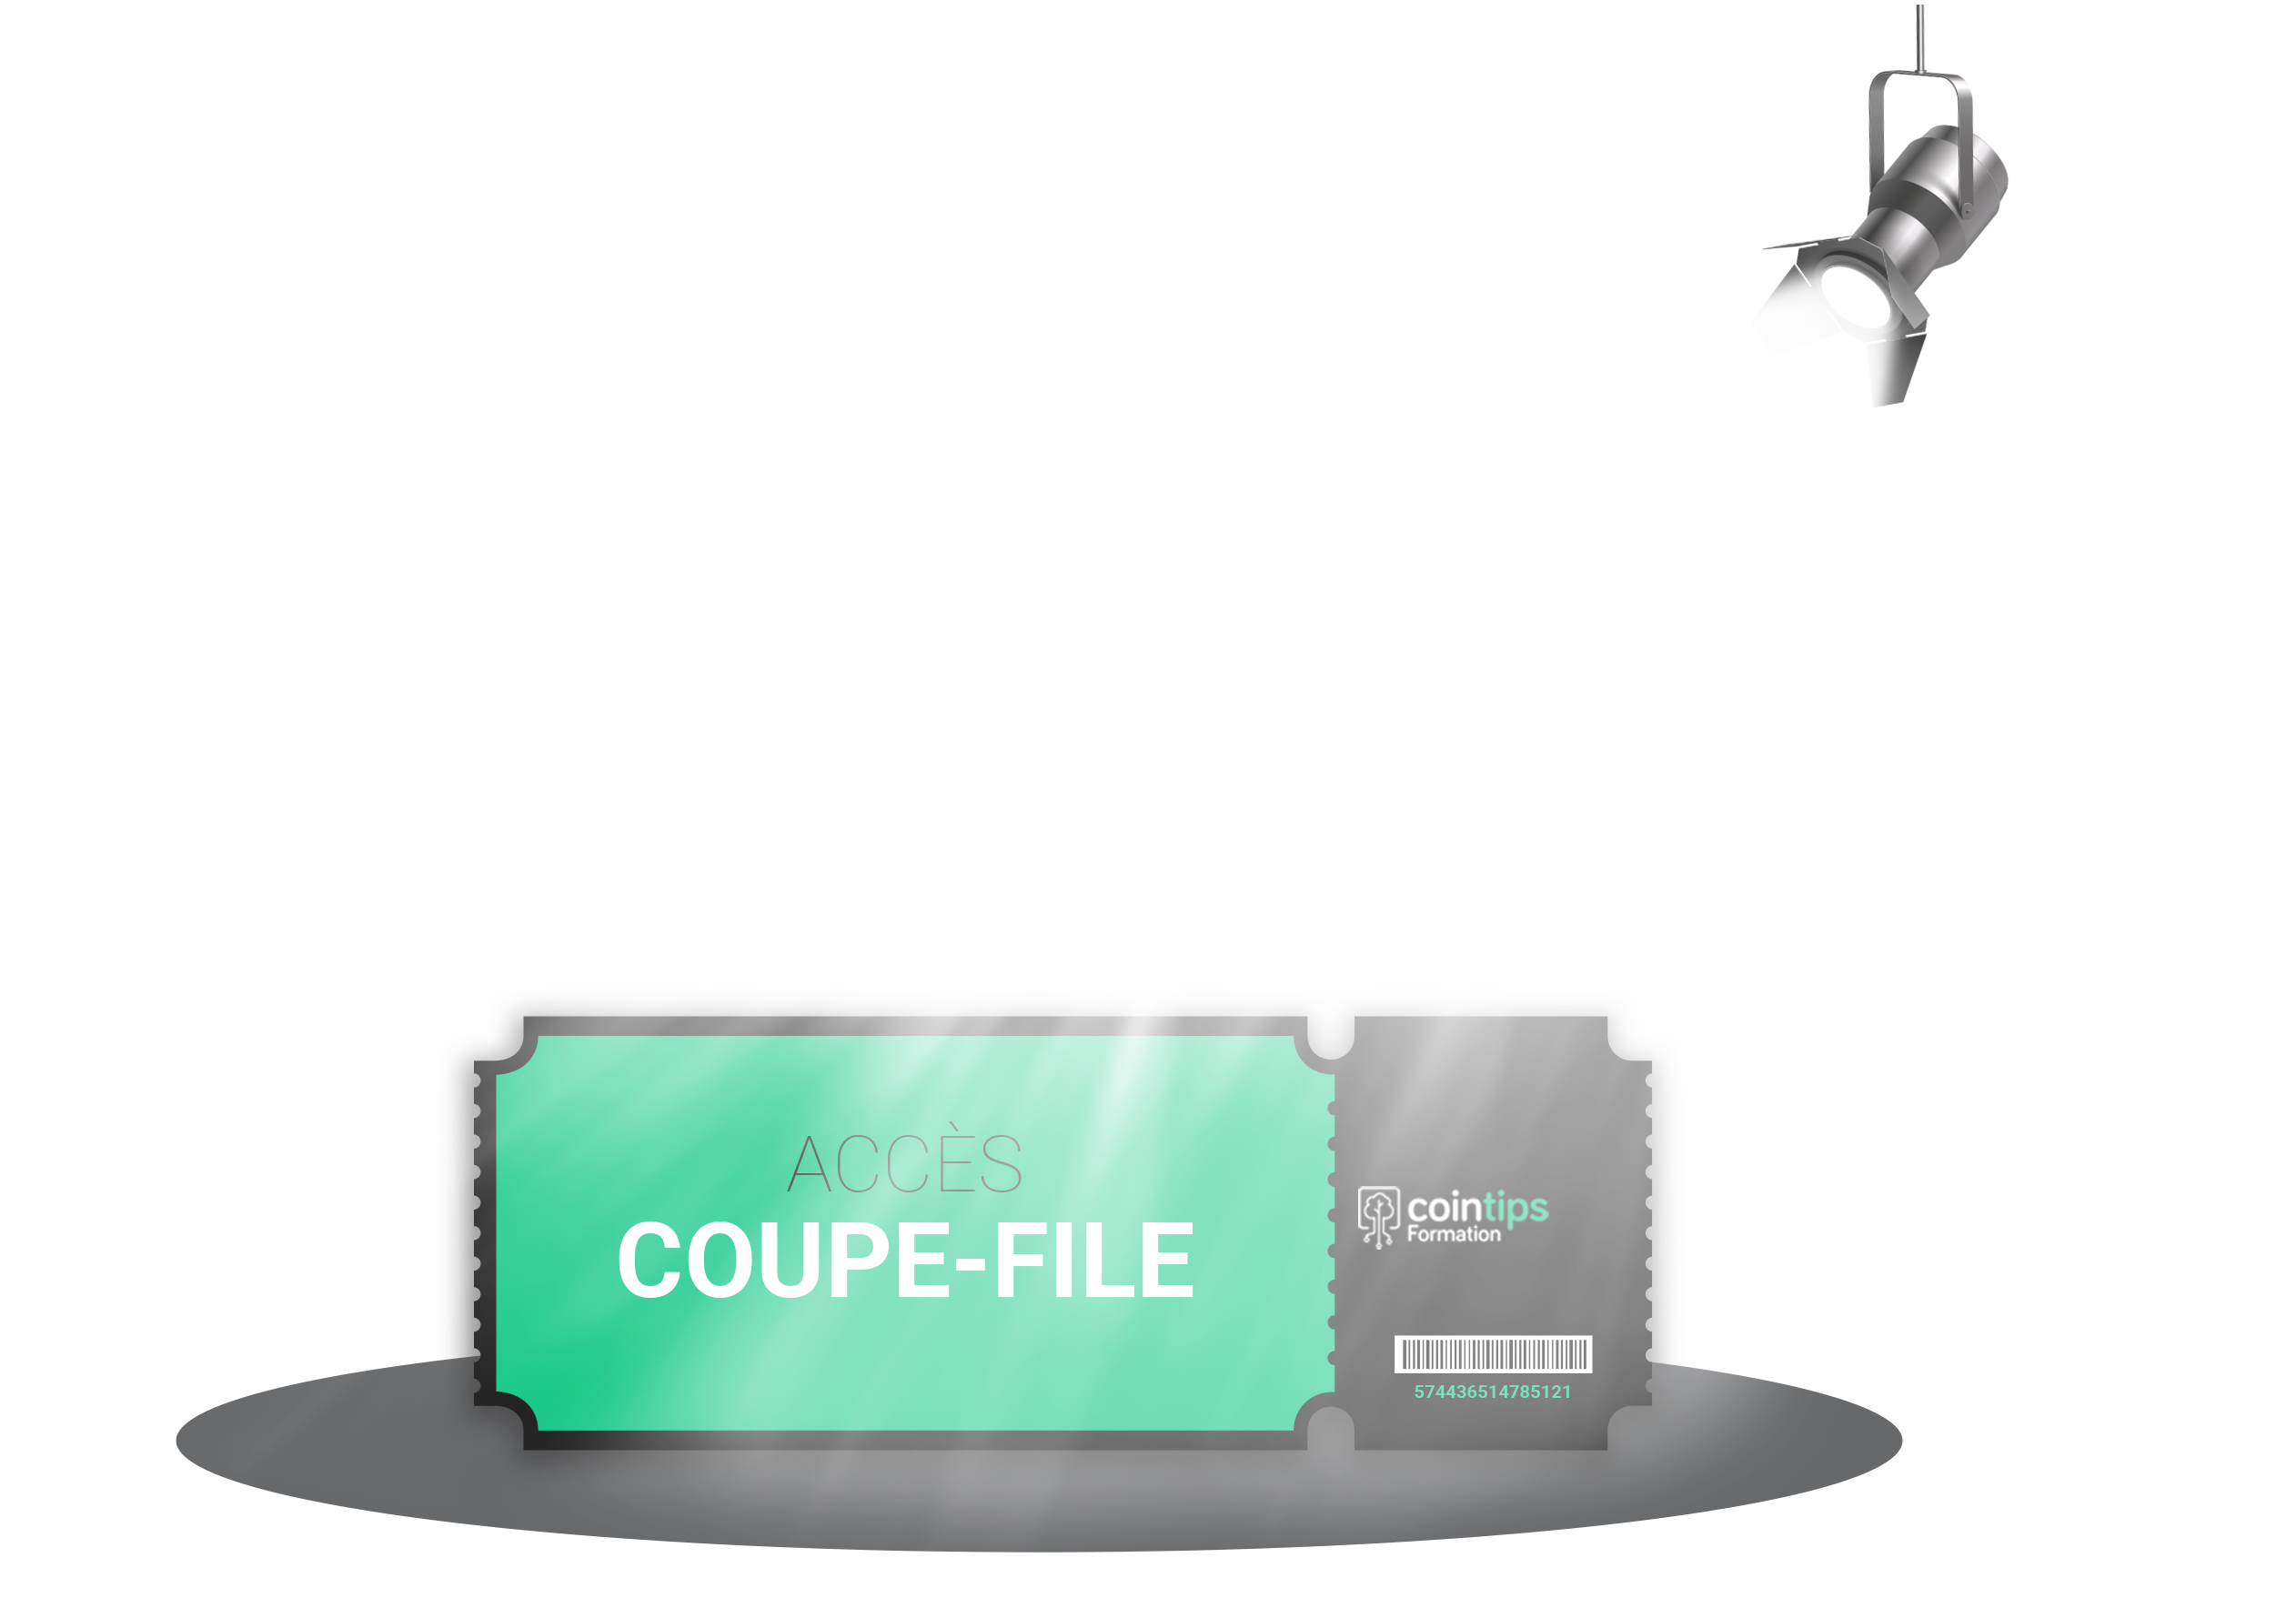 CLUB'INVEST - Accès coupe-file